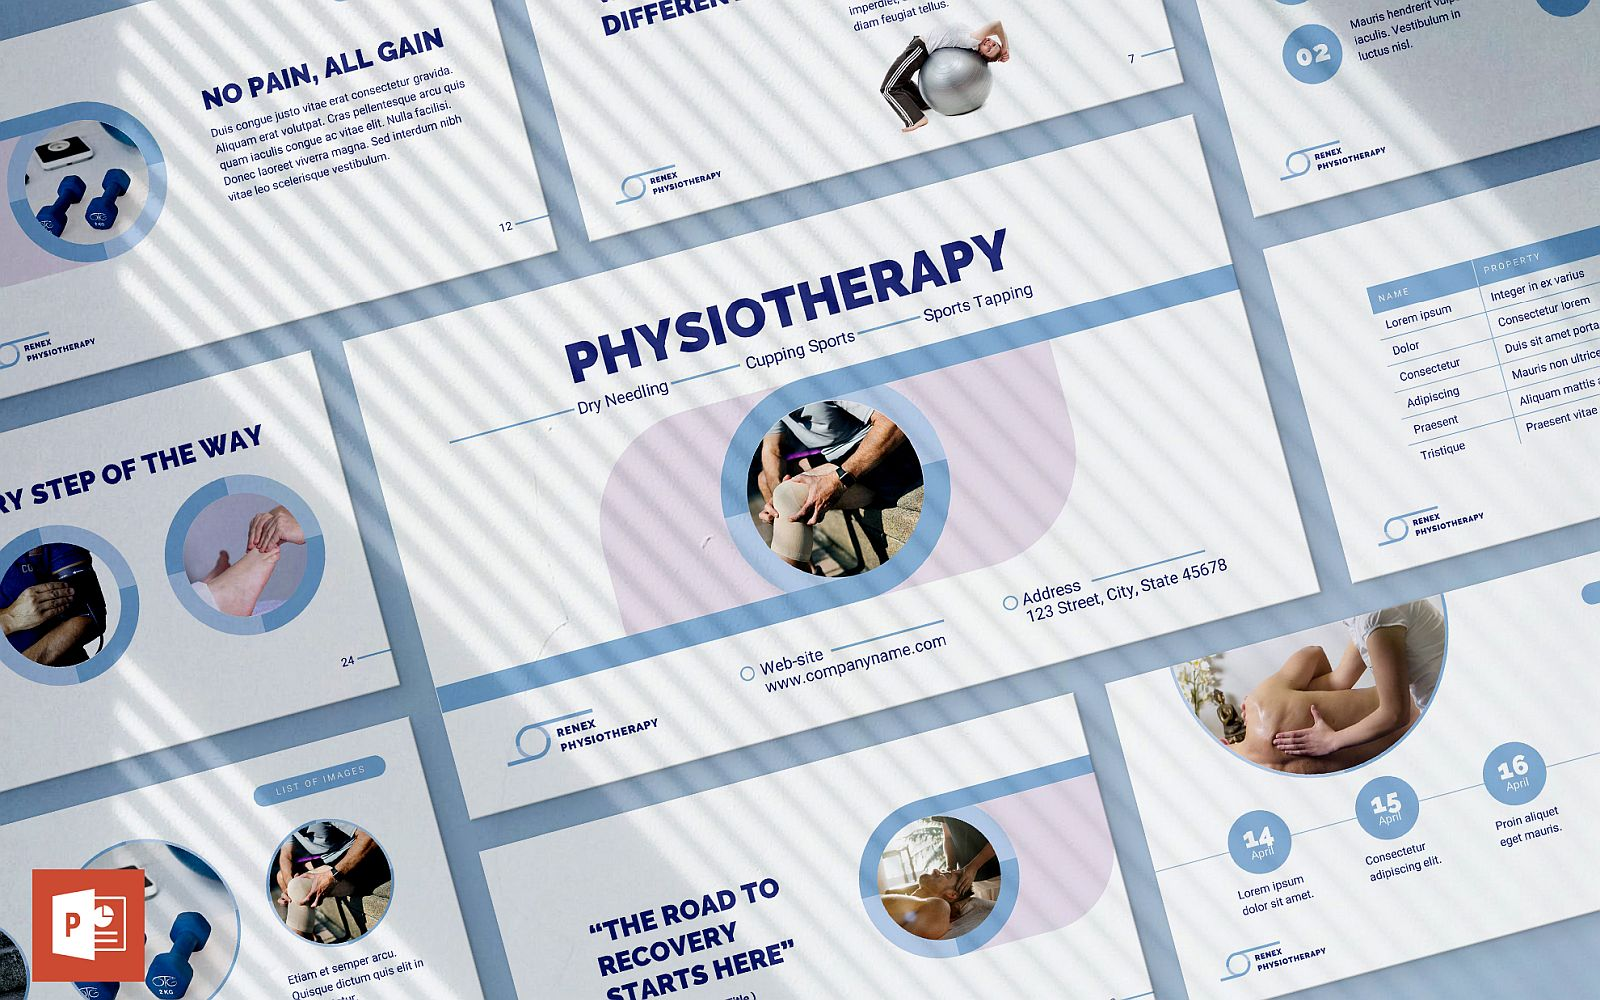 Physiotherapy Presentation PowerPoint Template